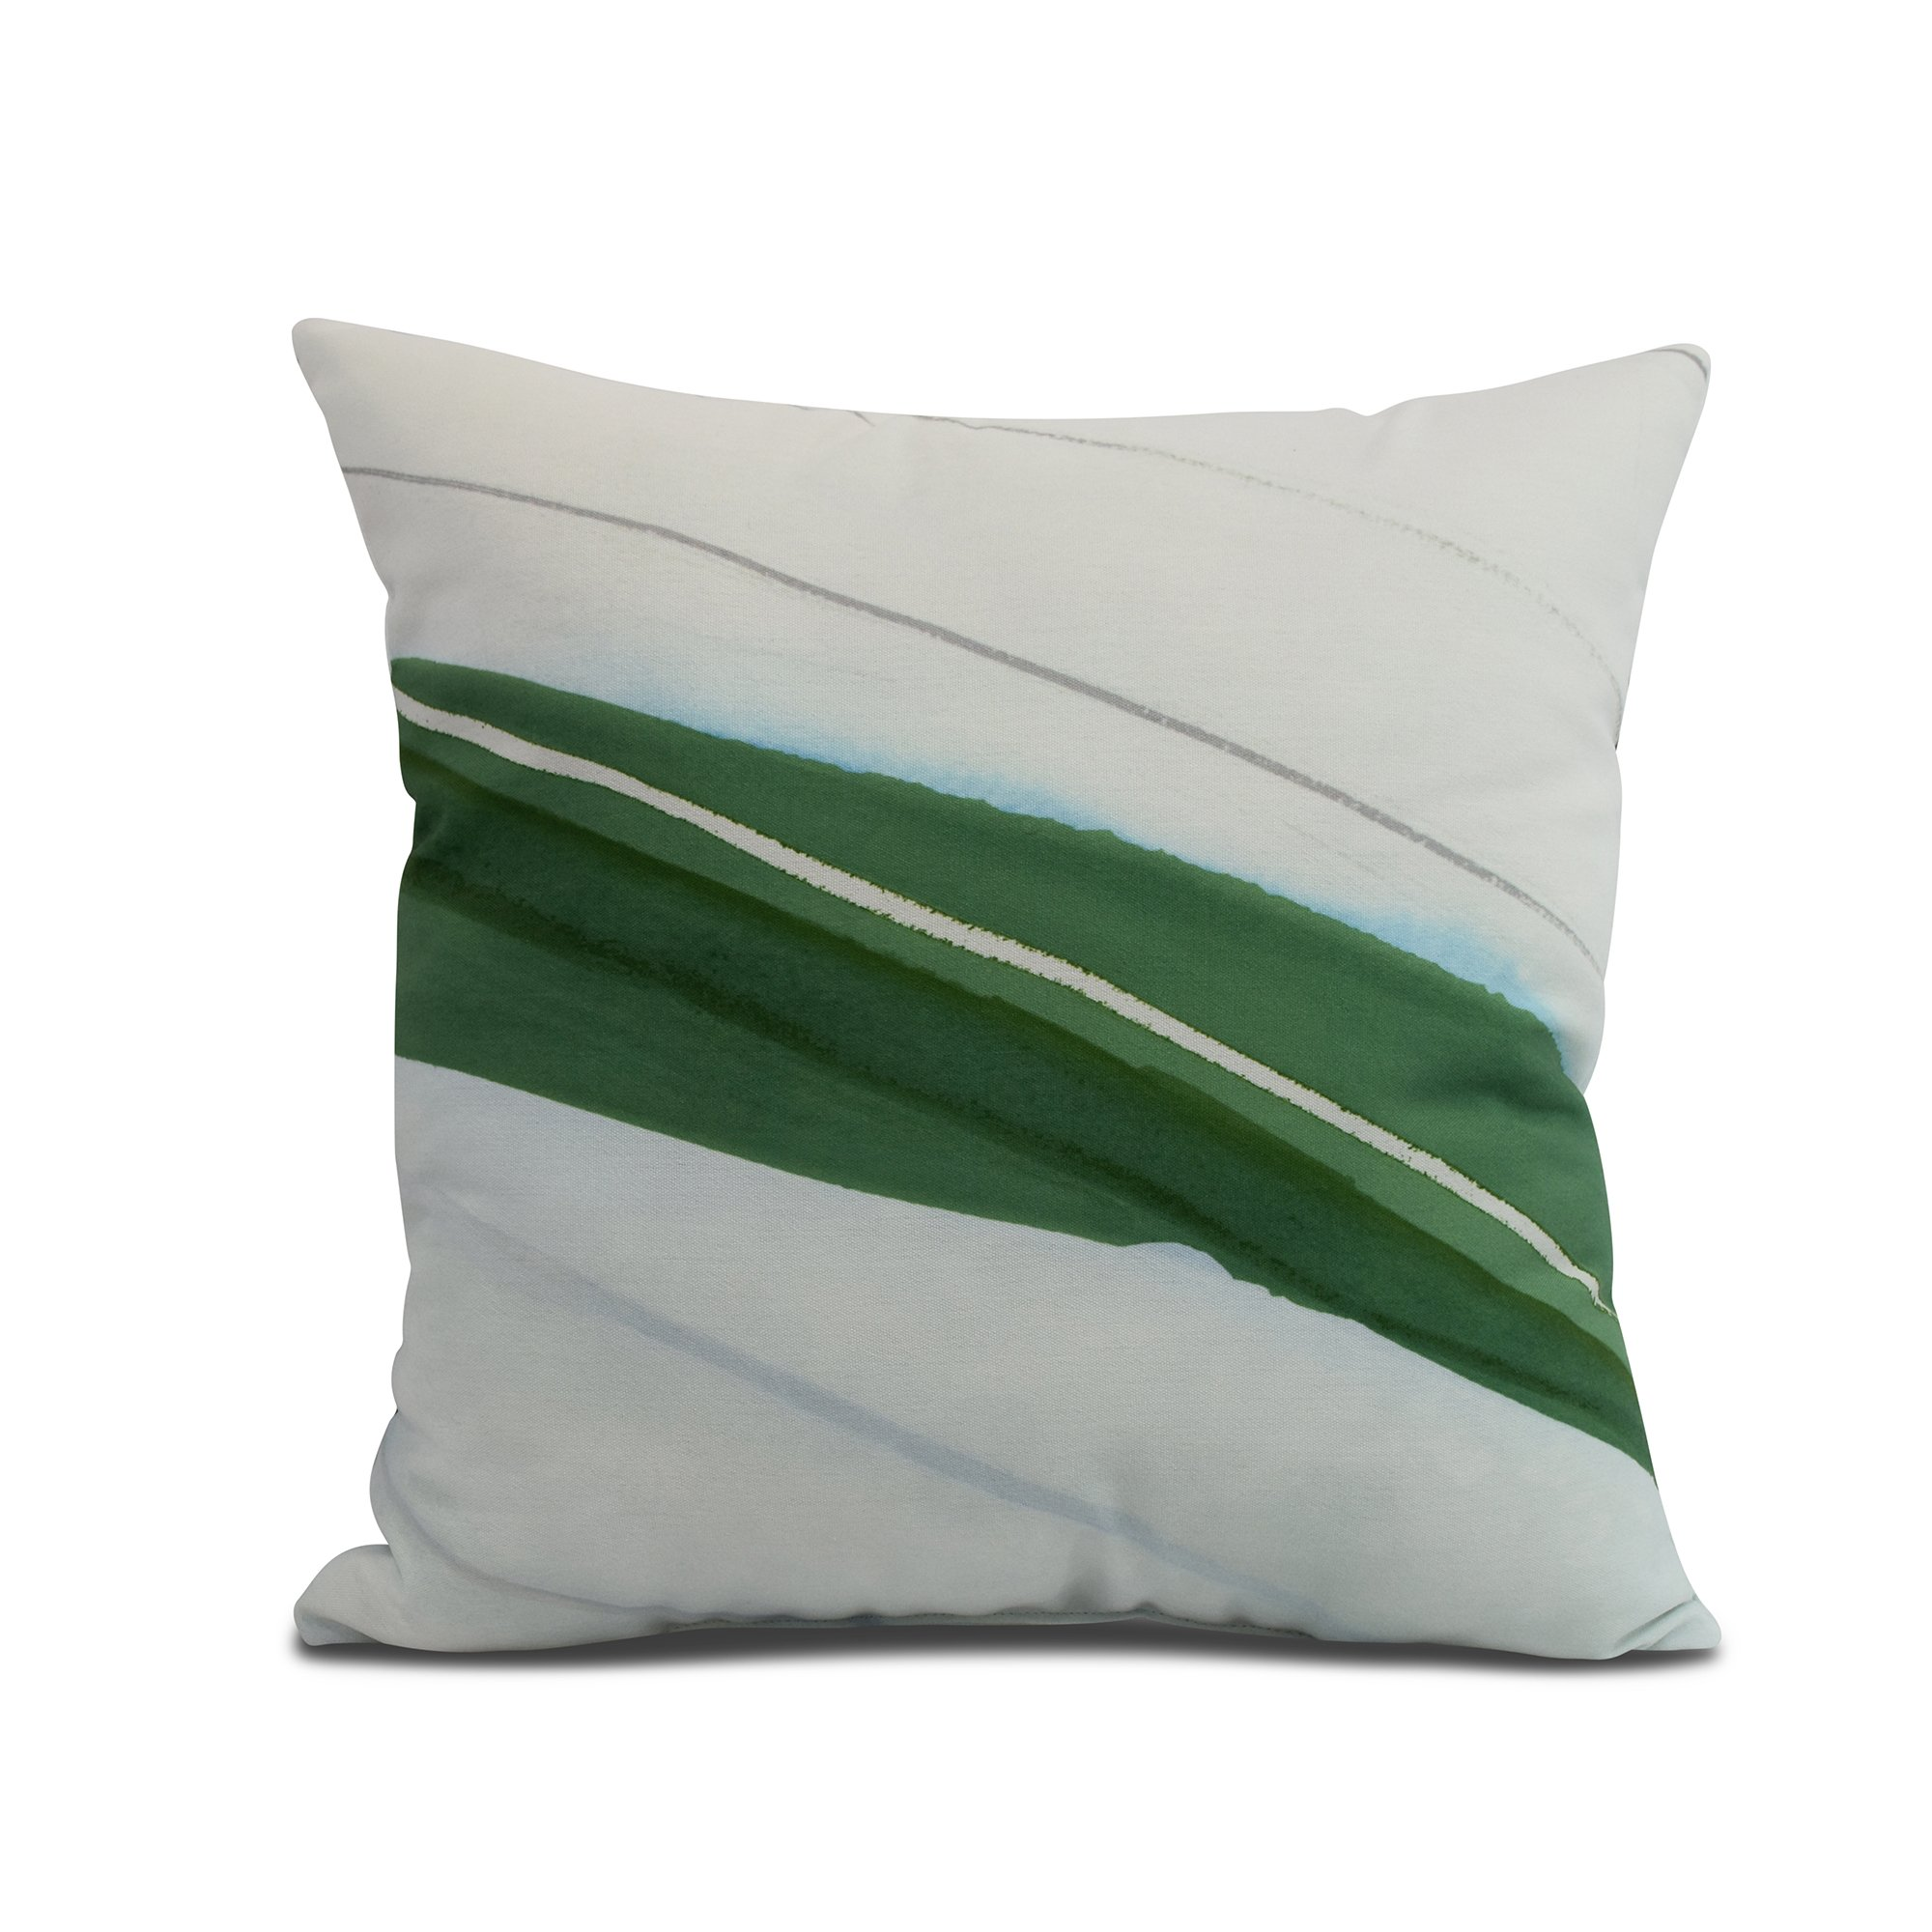 Simply Daisy, 16 x 16inch, Boat Bow Wood, Geometric Print Pillow, Green